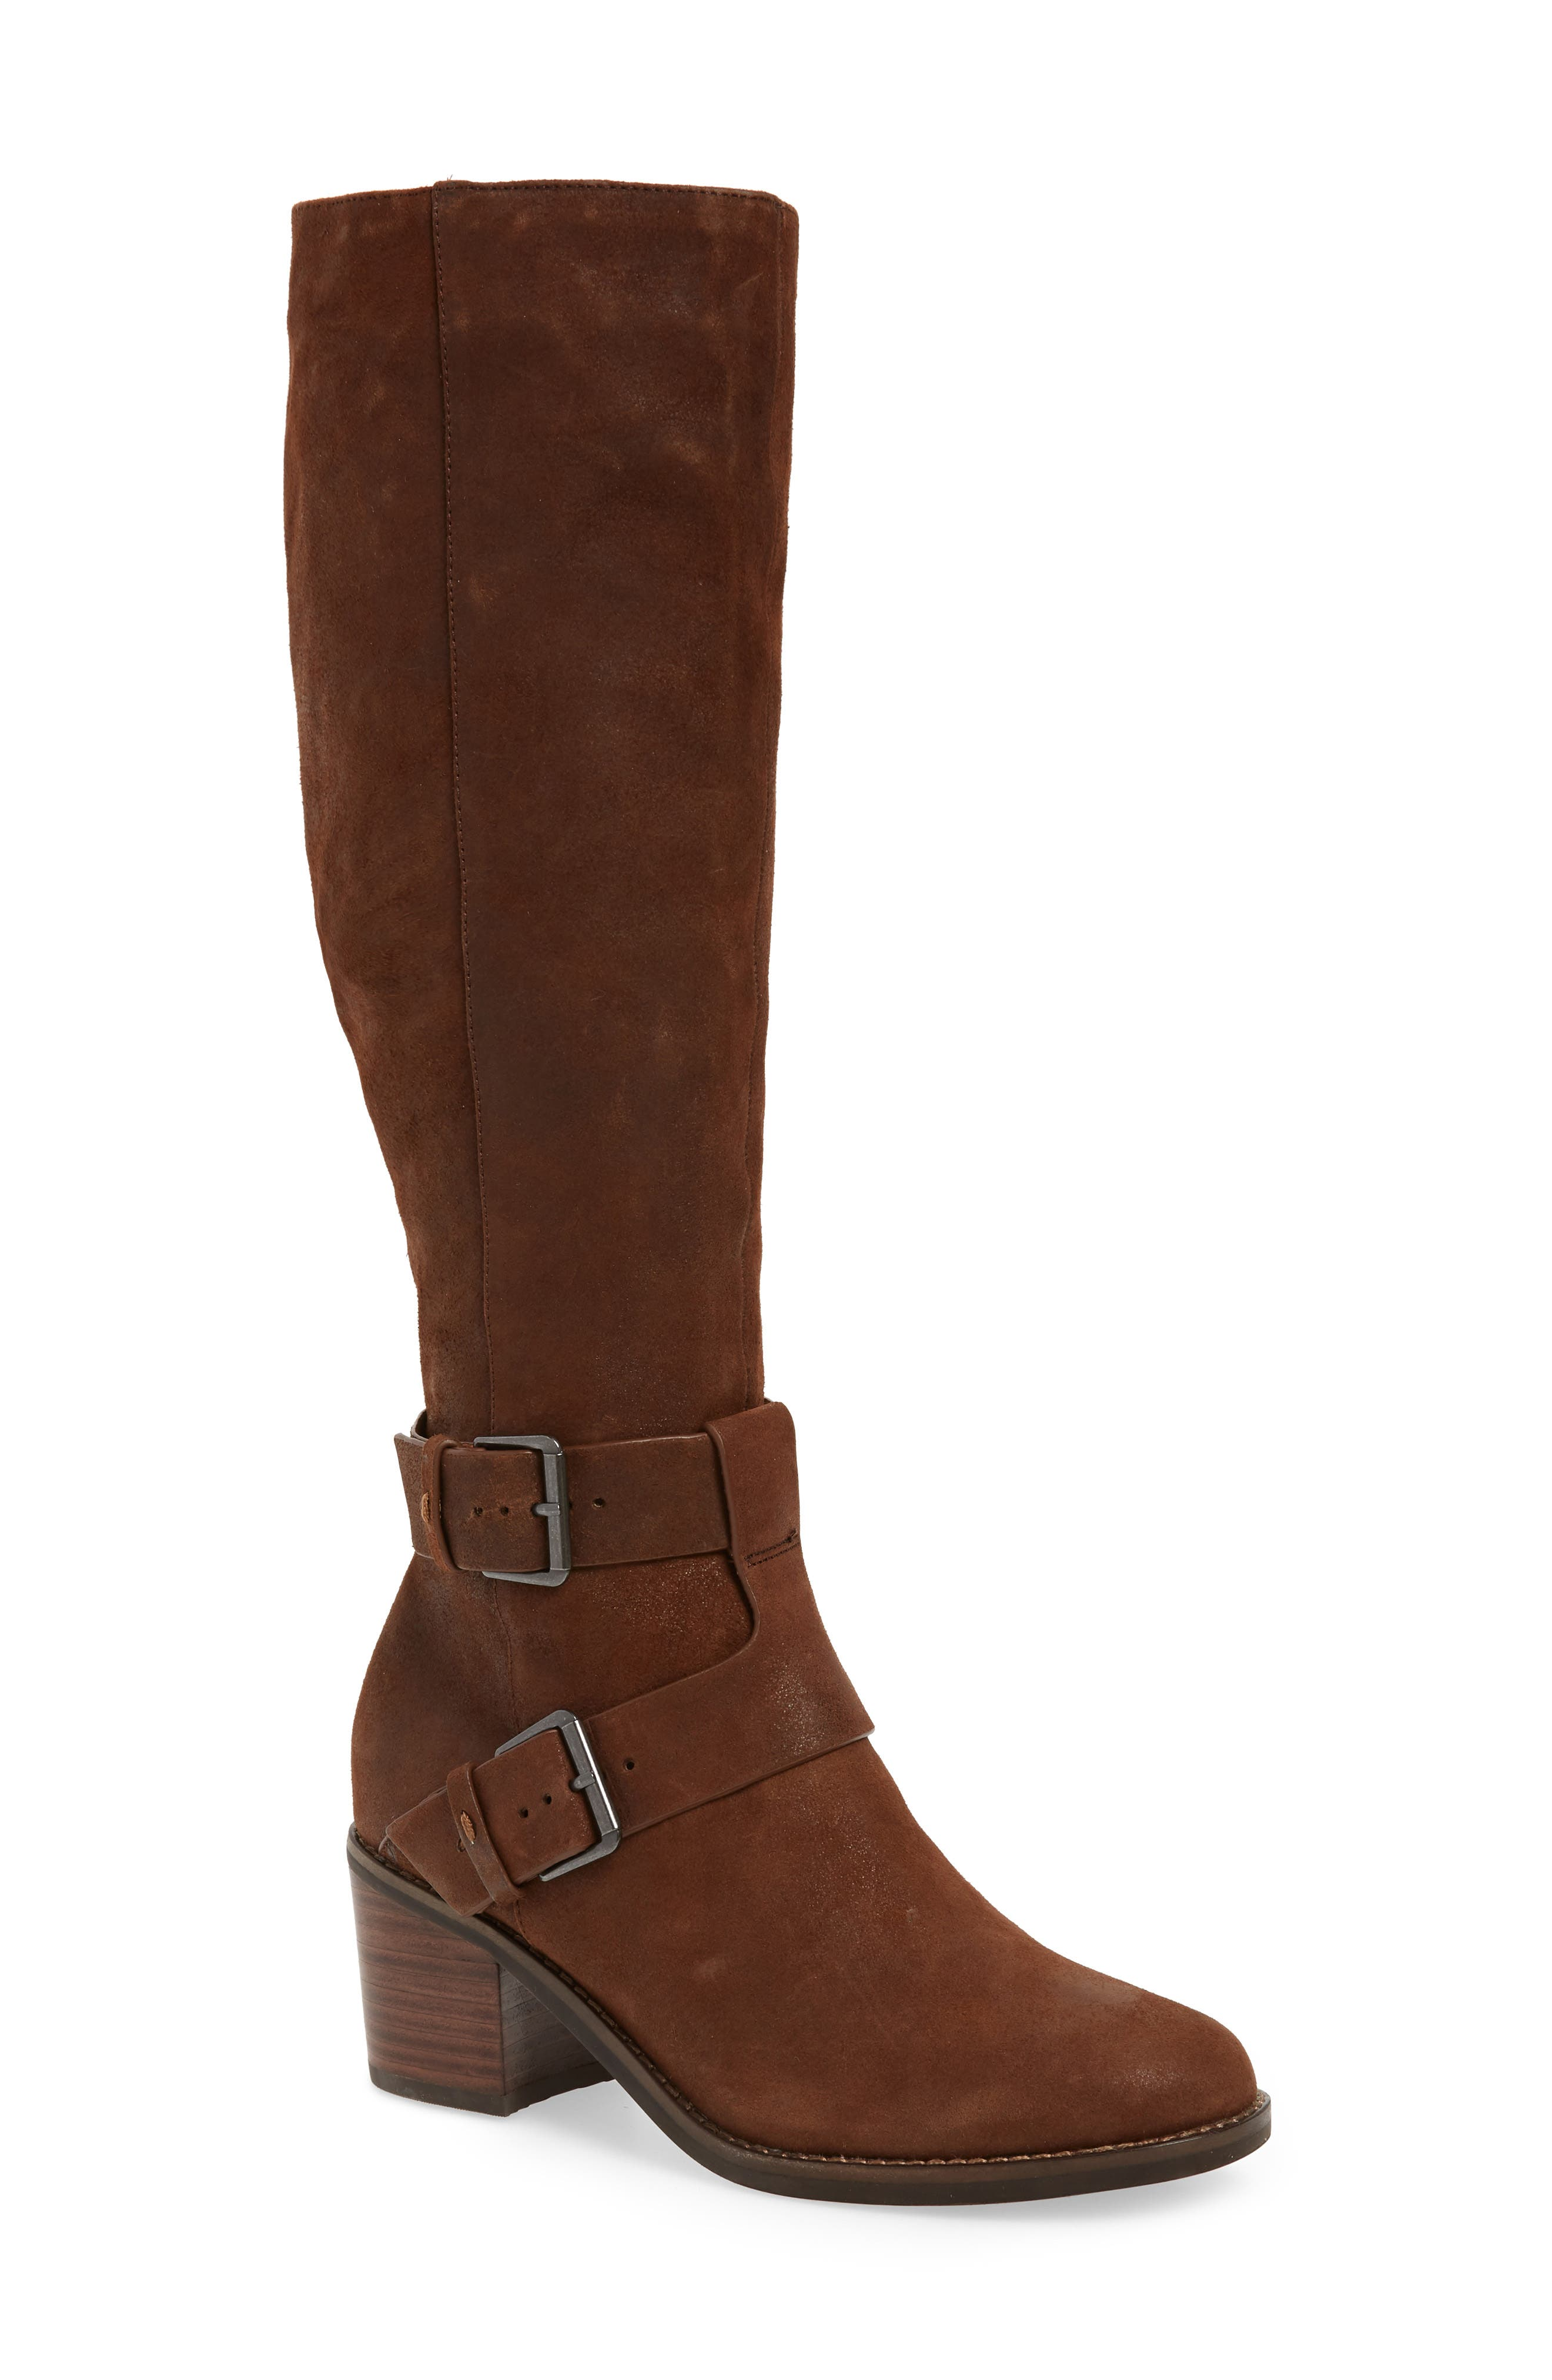 Gentle Souls By Kenneth Cole Verona Knee-High Riding Boot, Brown